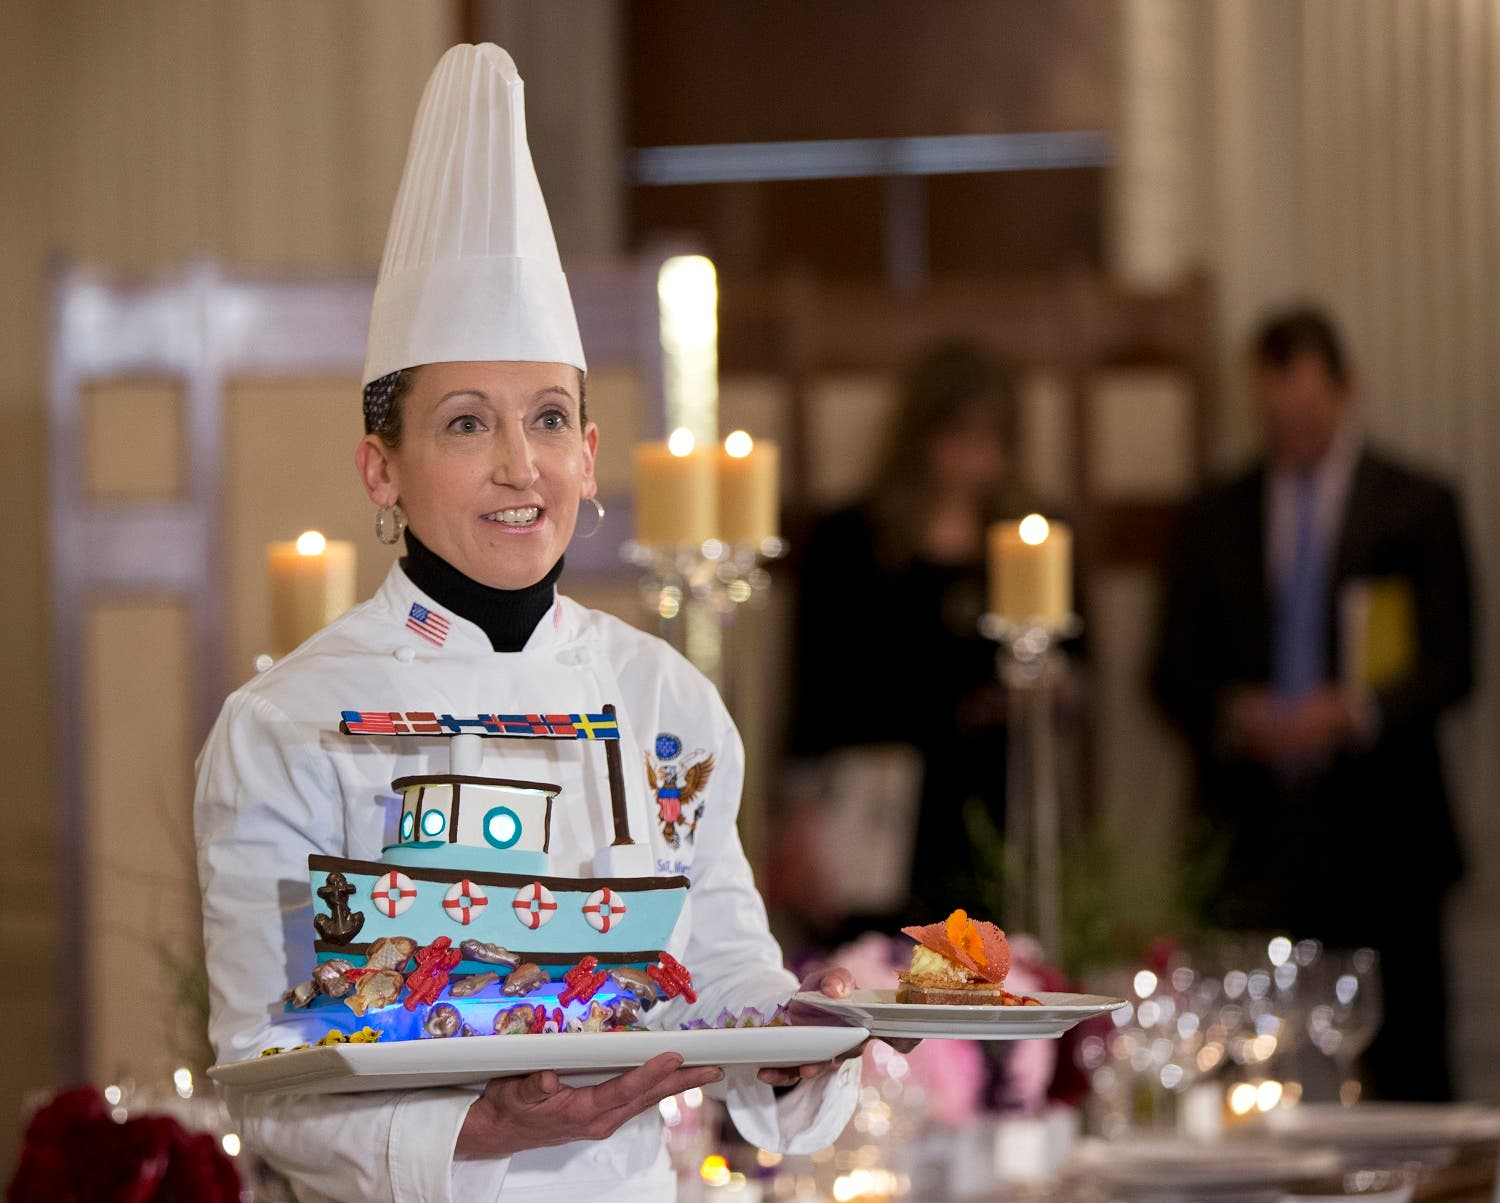 White House Executive Pastry Chef Susan Morrison shows the dessert during a press preview in the State Dining Room at the White House in Washington, Thursday, May 12, 2016, for the state dinner in honor of the official visit of Nordic leaders. (AP